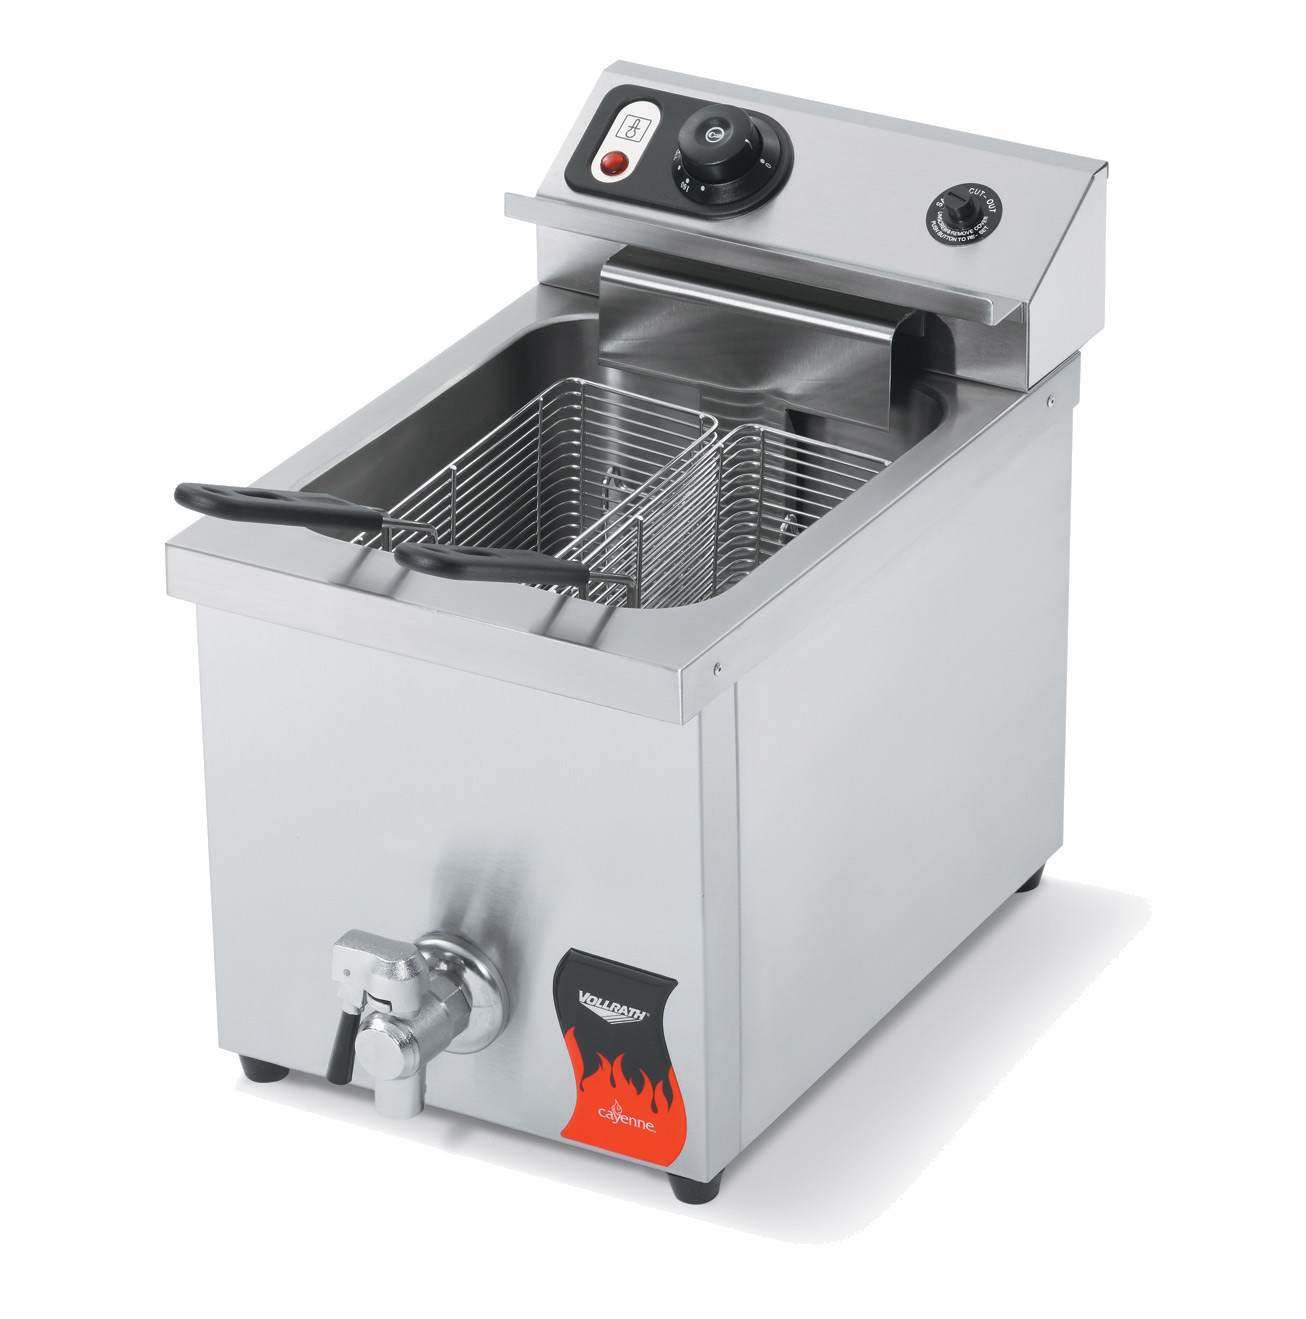 Vollrath 40709 fryer, electric, countertop, full pot